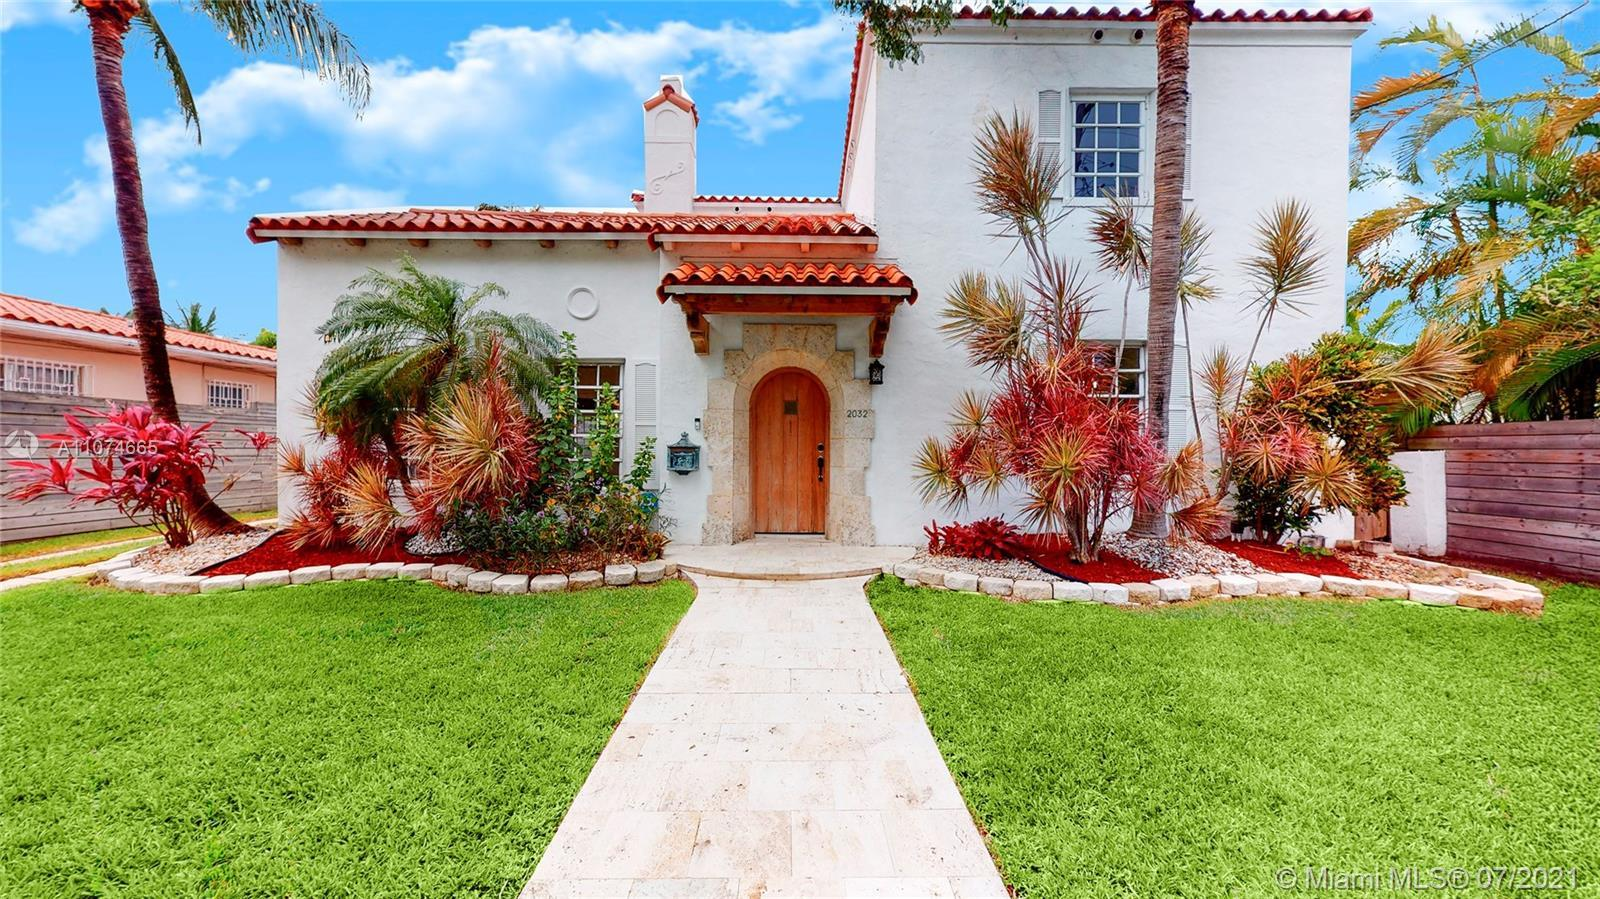 Located across Miami Beach golf course and three blocks from Lincoln Road. This Mediterranean 2 sto